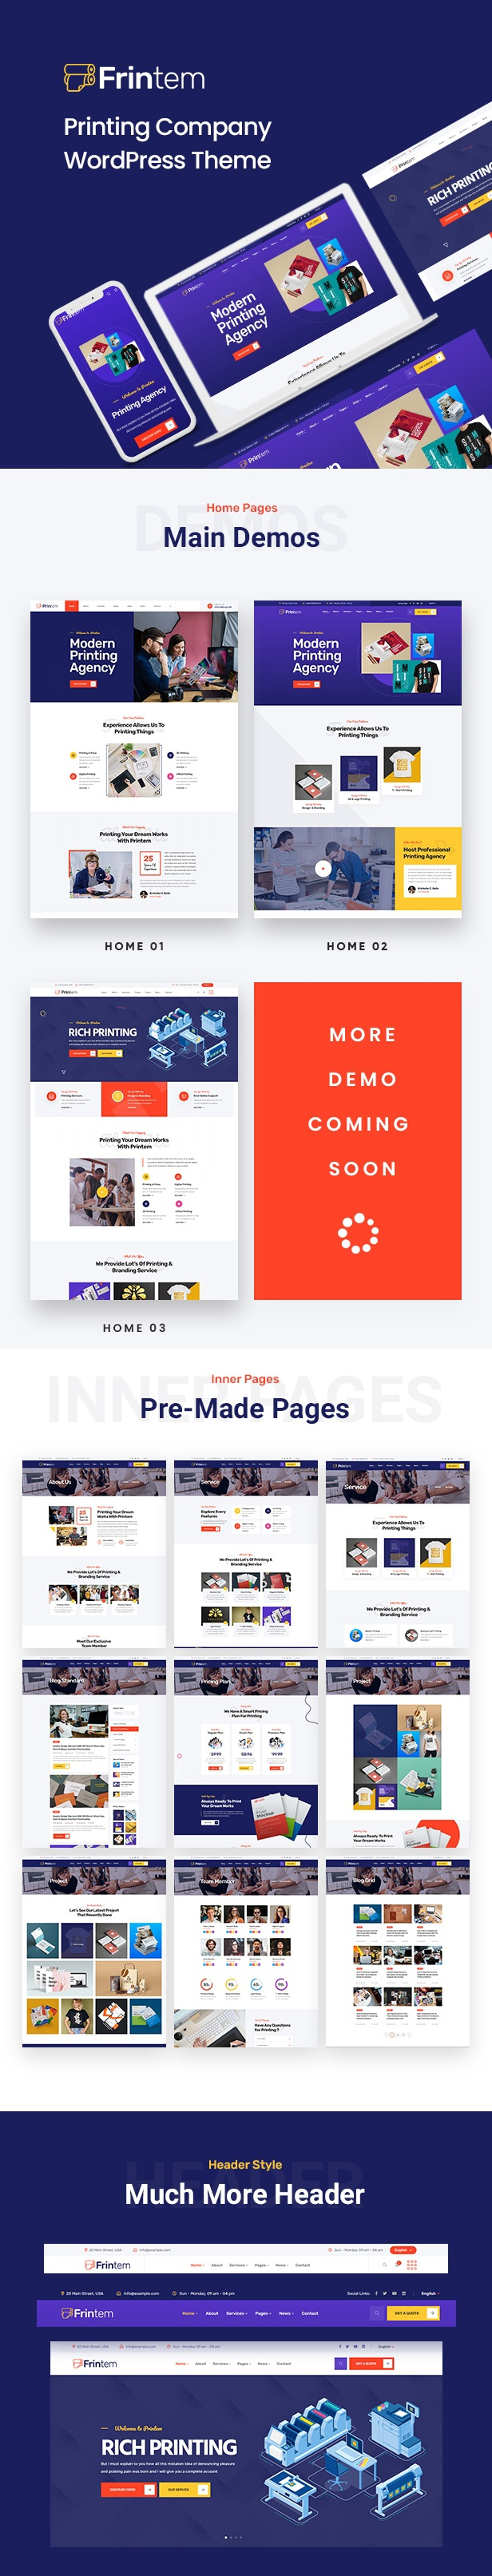 Printing Company WordPress Theme